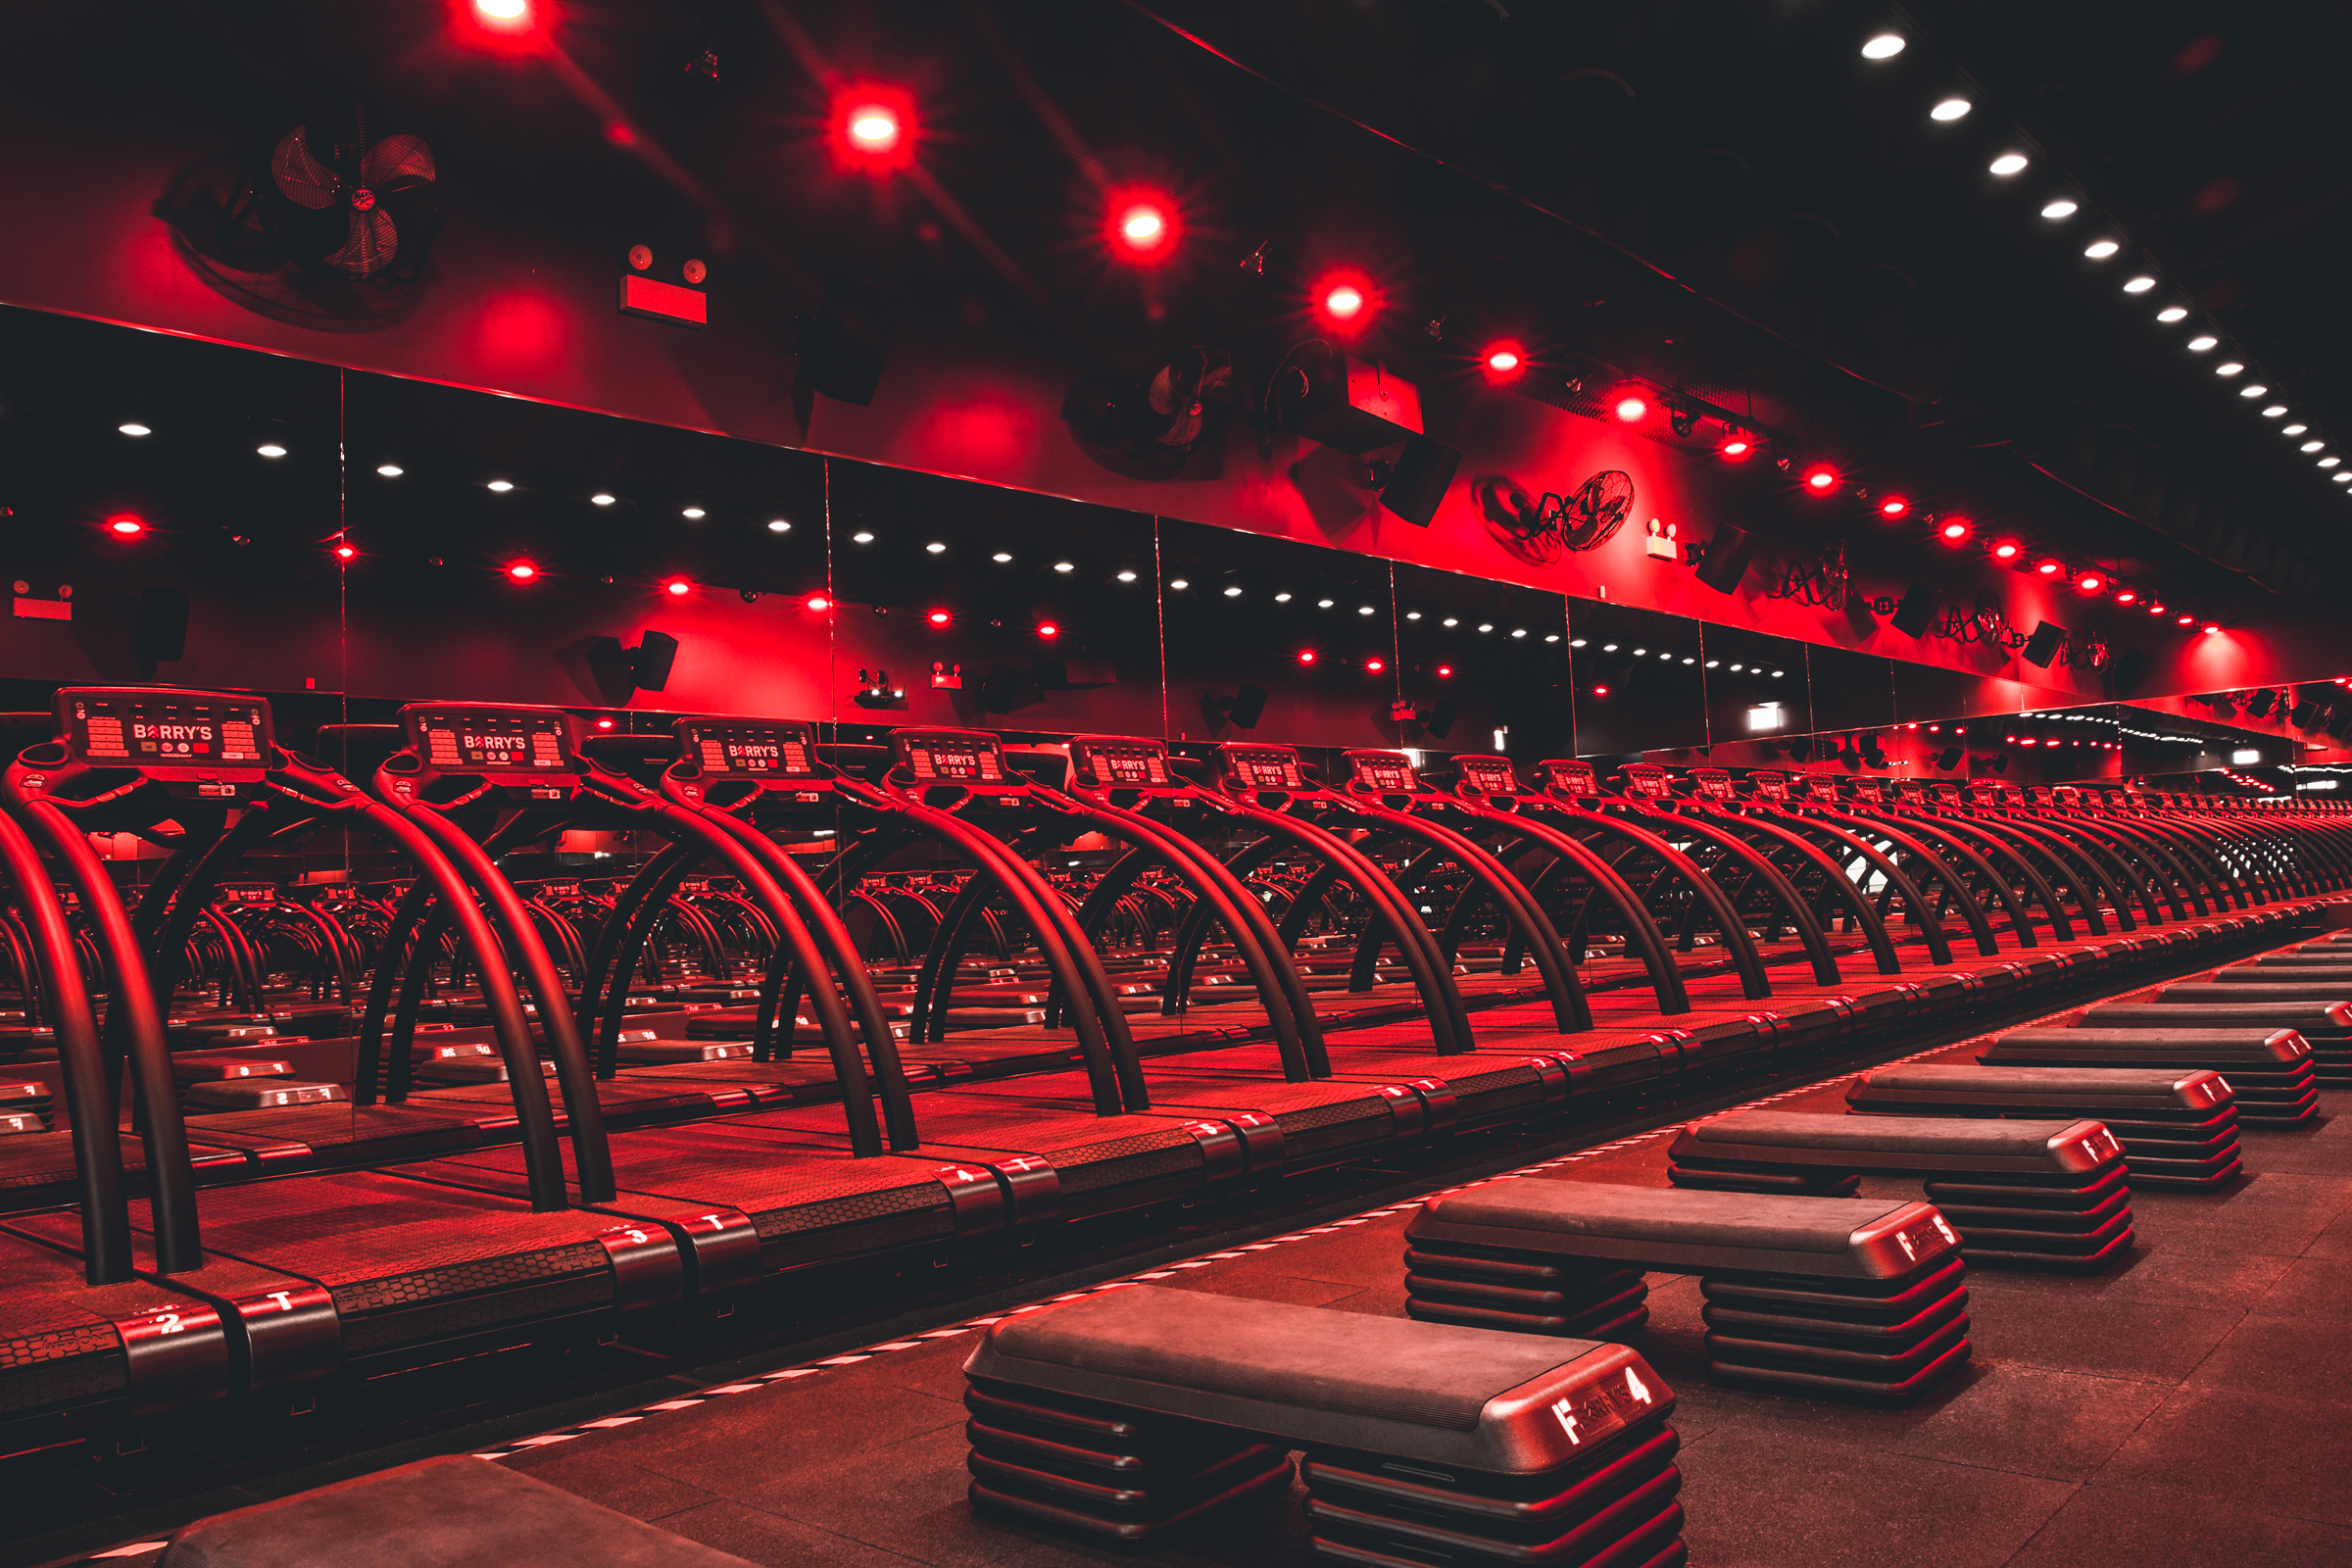 Barry's Bootcamp (Barry's Bootcamp)<p></p>